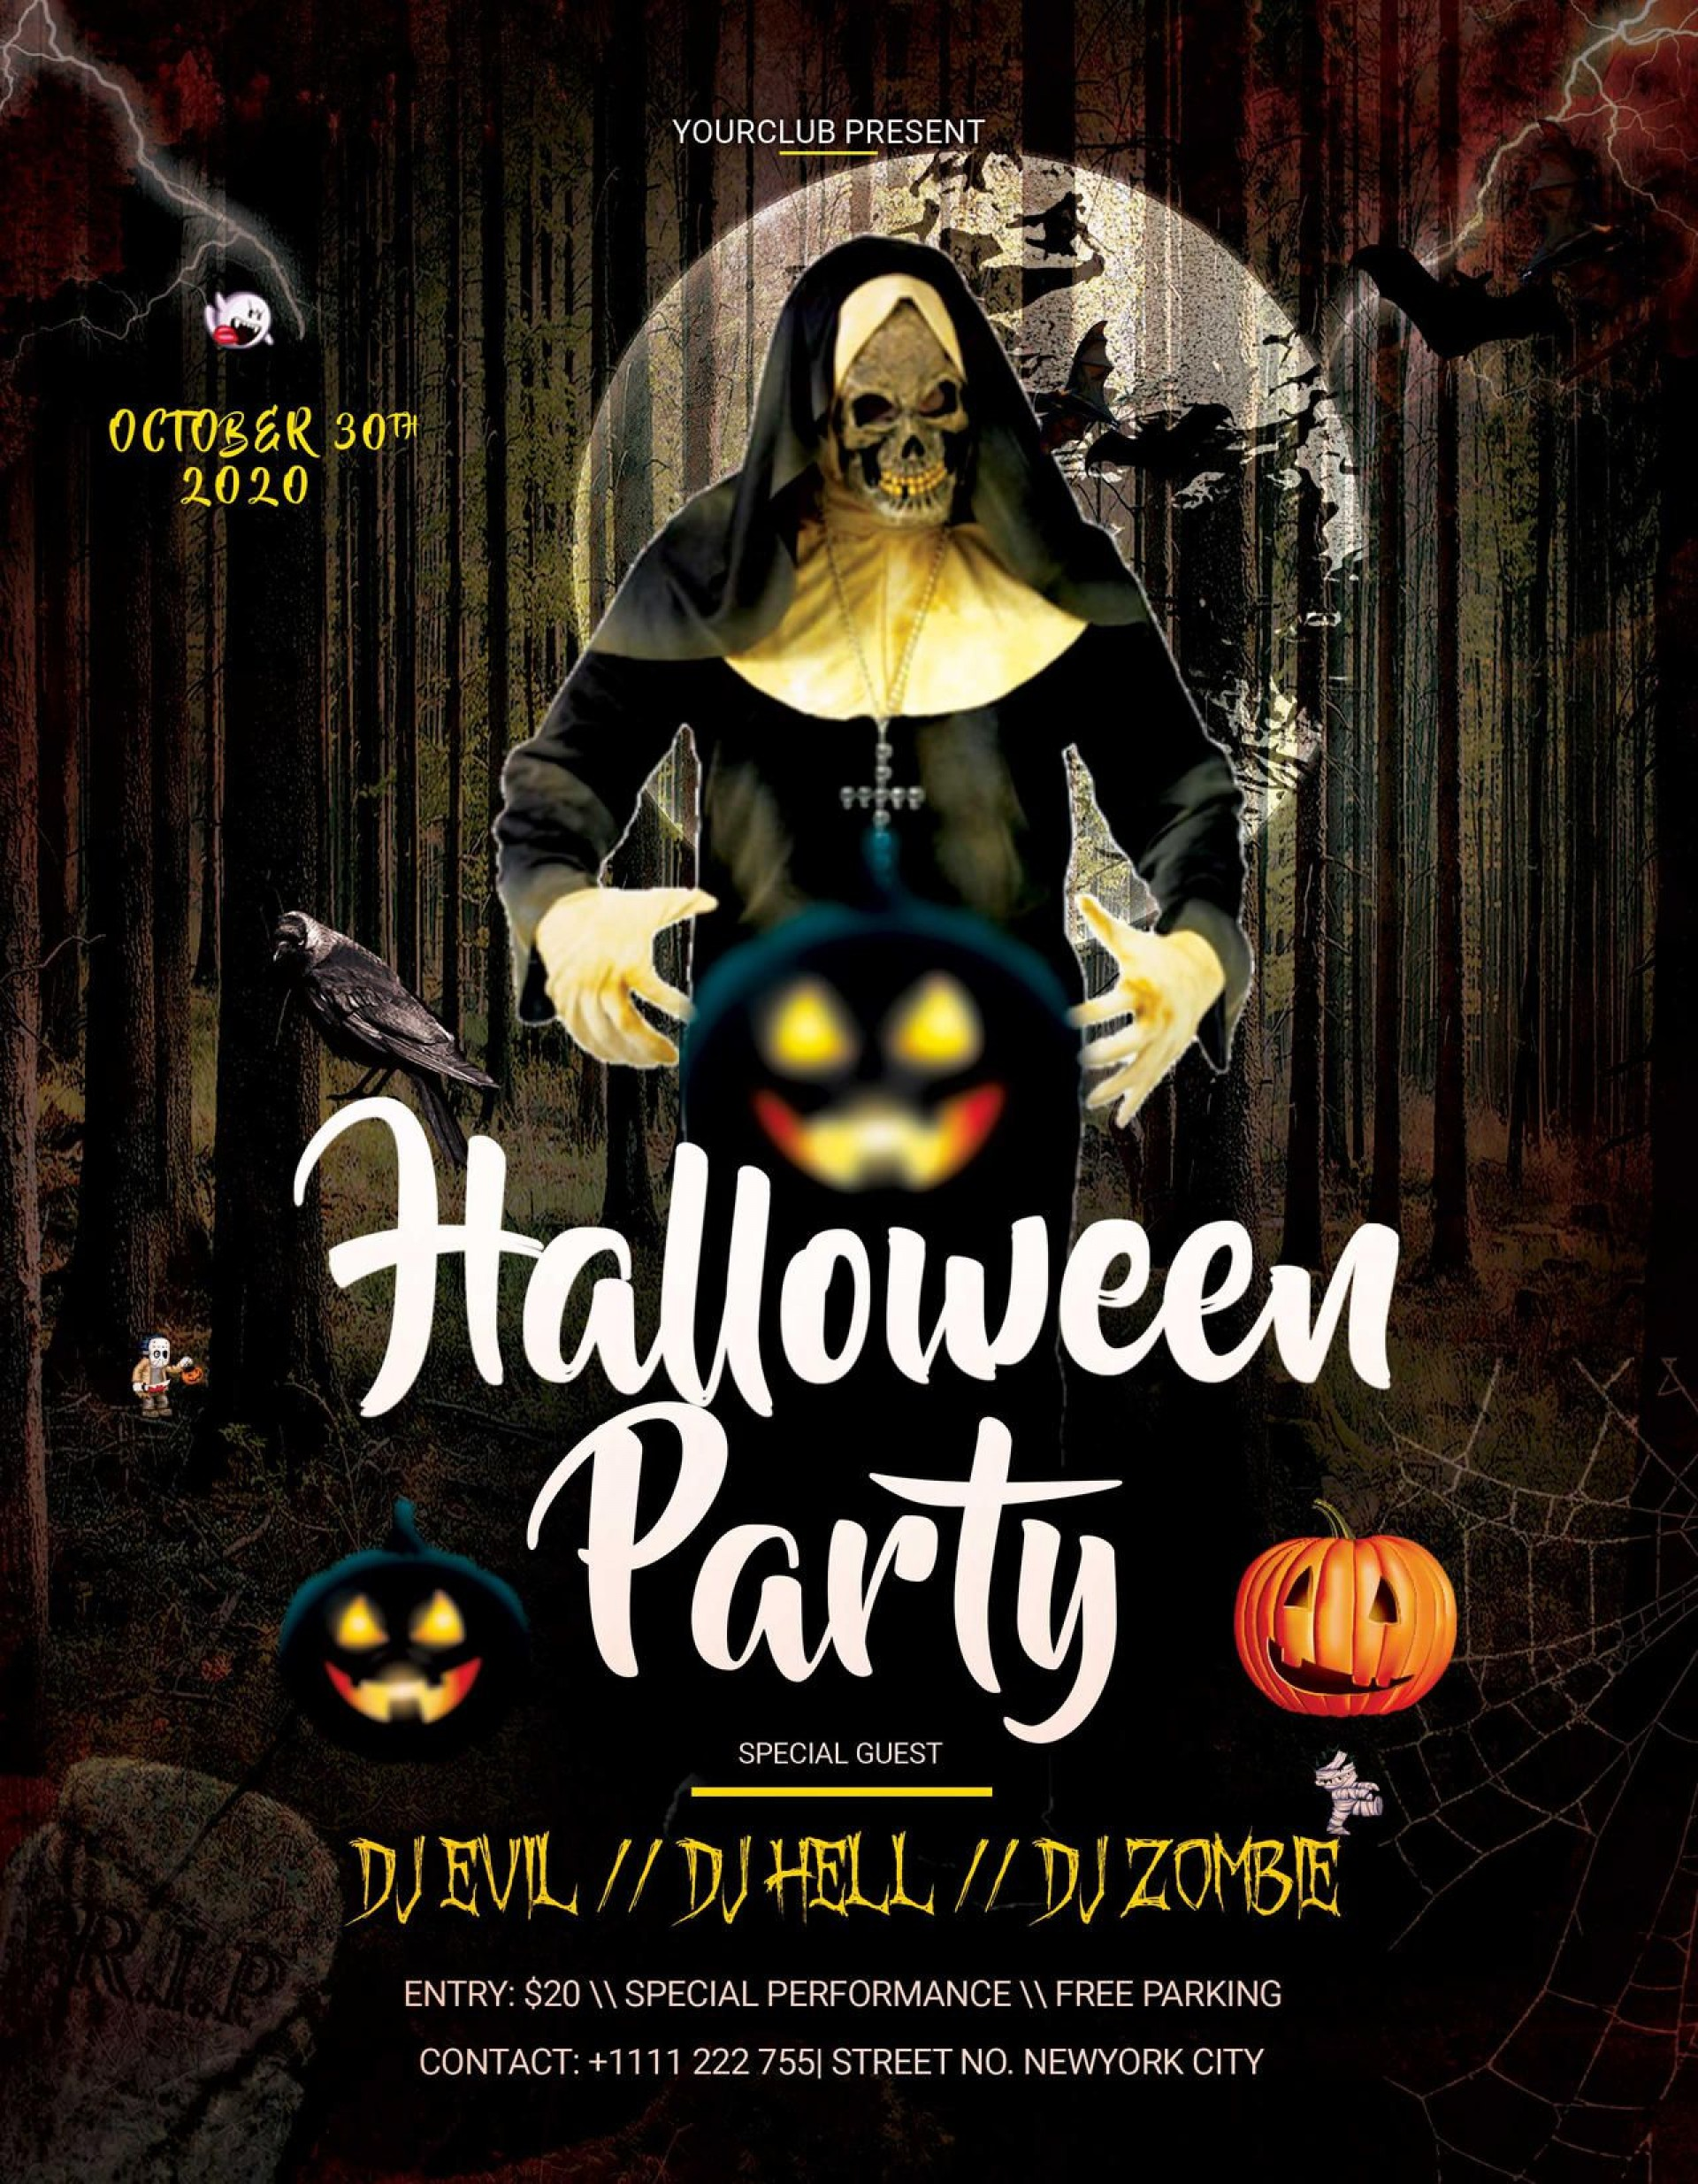 006 Excellent Free Halloween Party Flyer Template Inspiration  Templates1920